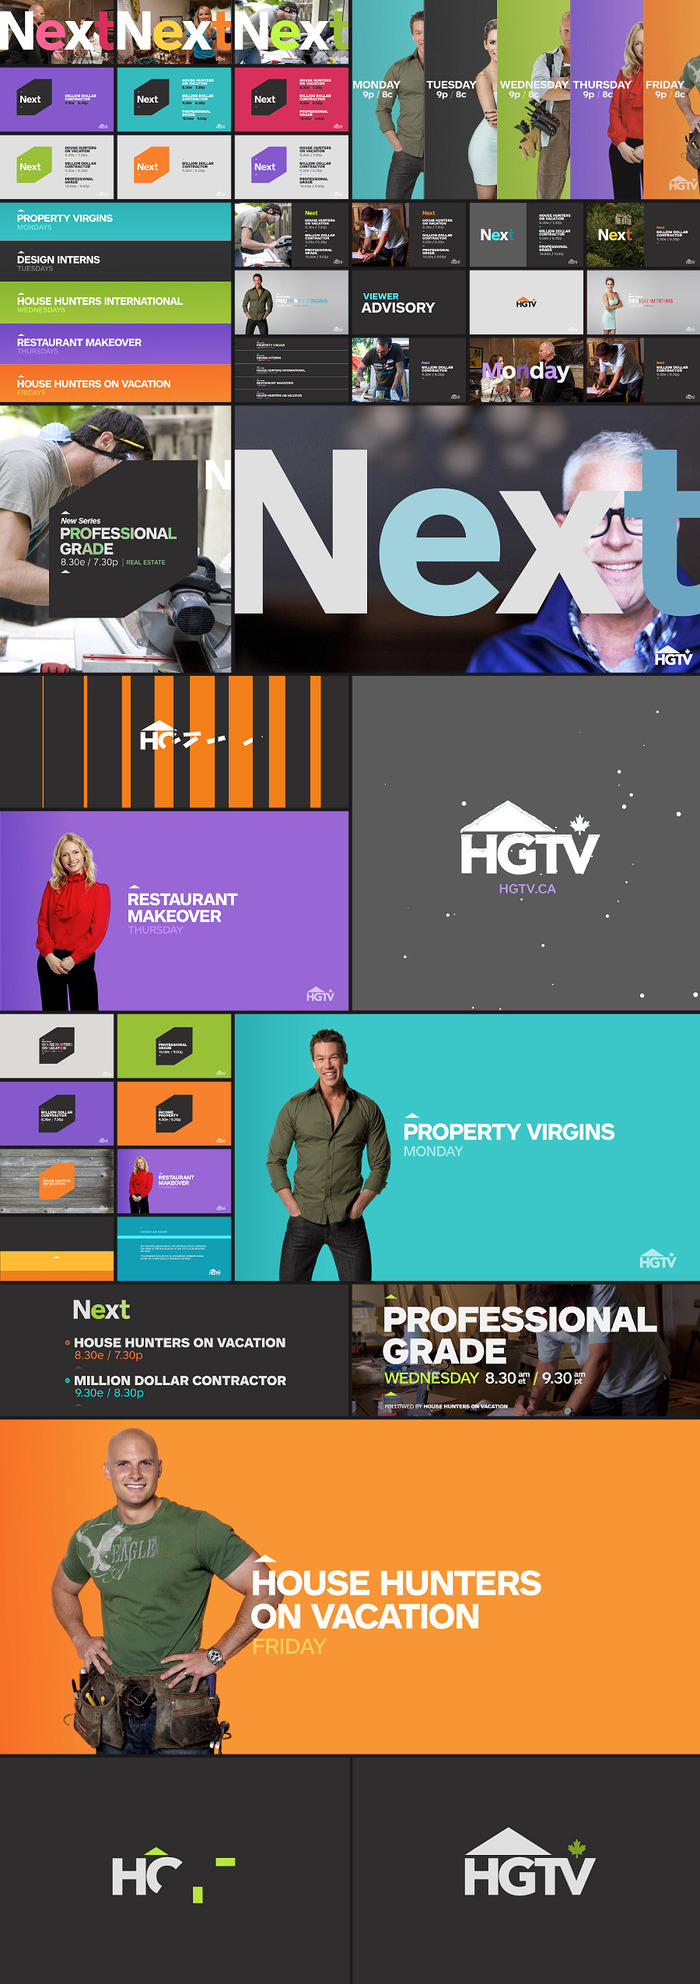 HGTV_process_ForWebsite_900.jpg